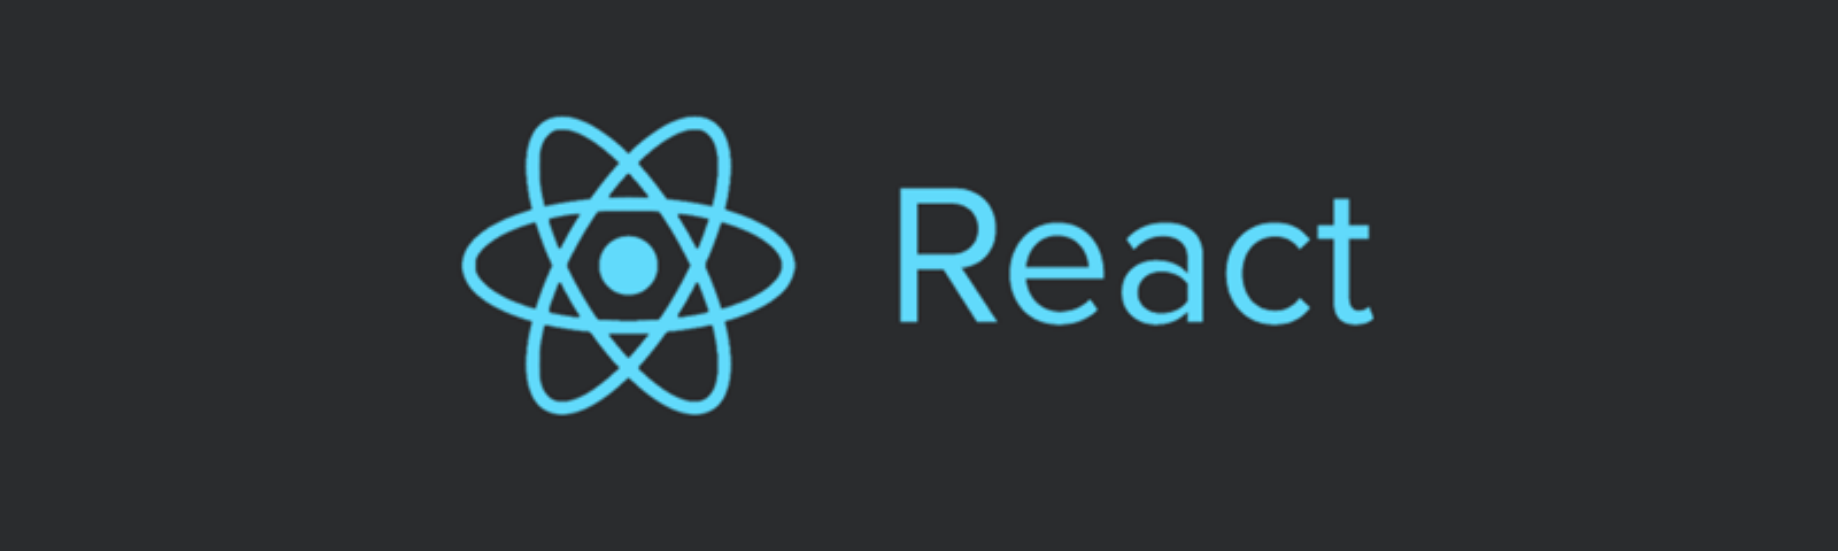 3 Awesome ReactJS Frameworks you probably didn't know existed